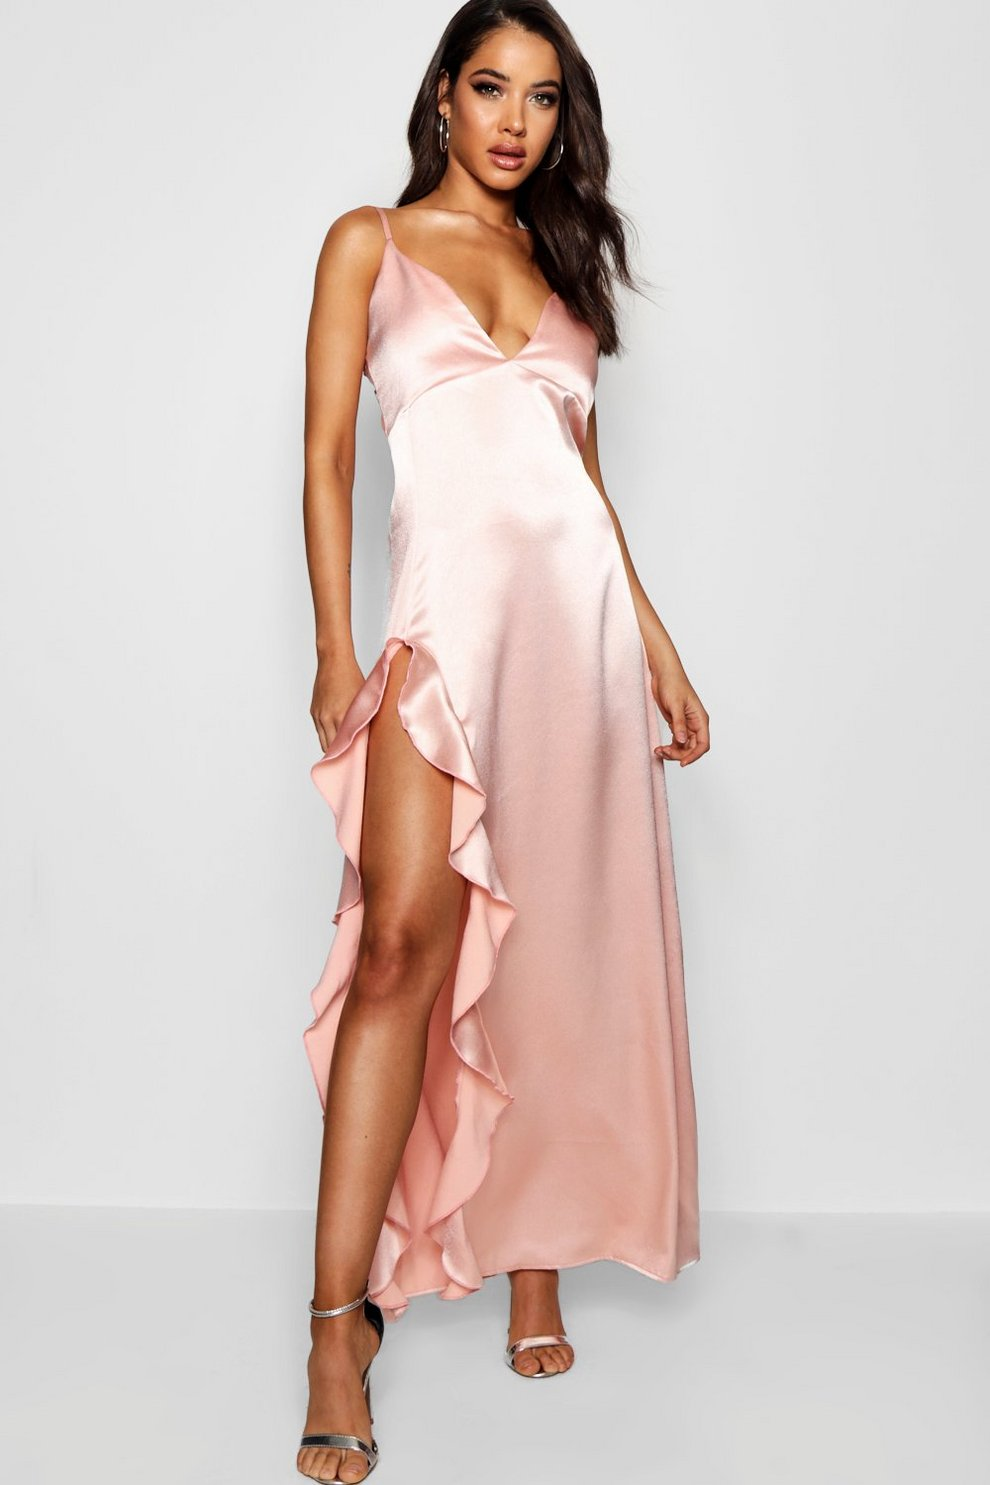 Boohoo Frill Detail Satin Maxi Dress Discount Supply View Sale Online Free Shipping Manchester Visit For Sale UPkTppHKU